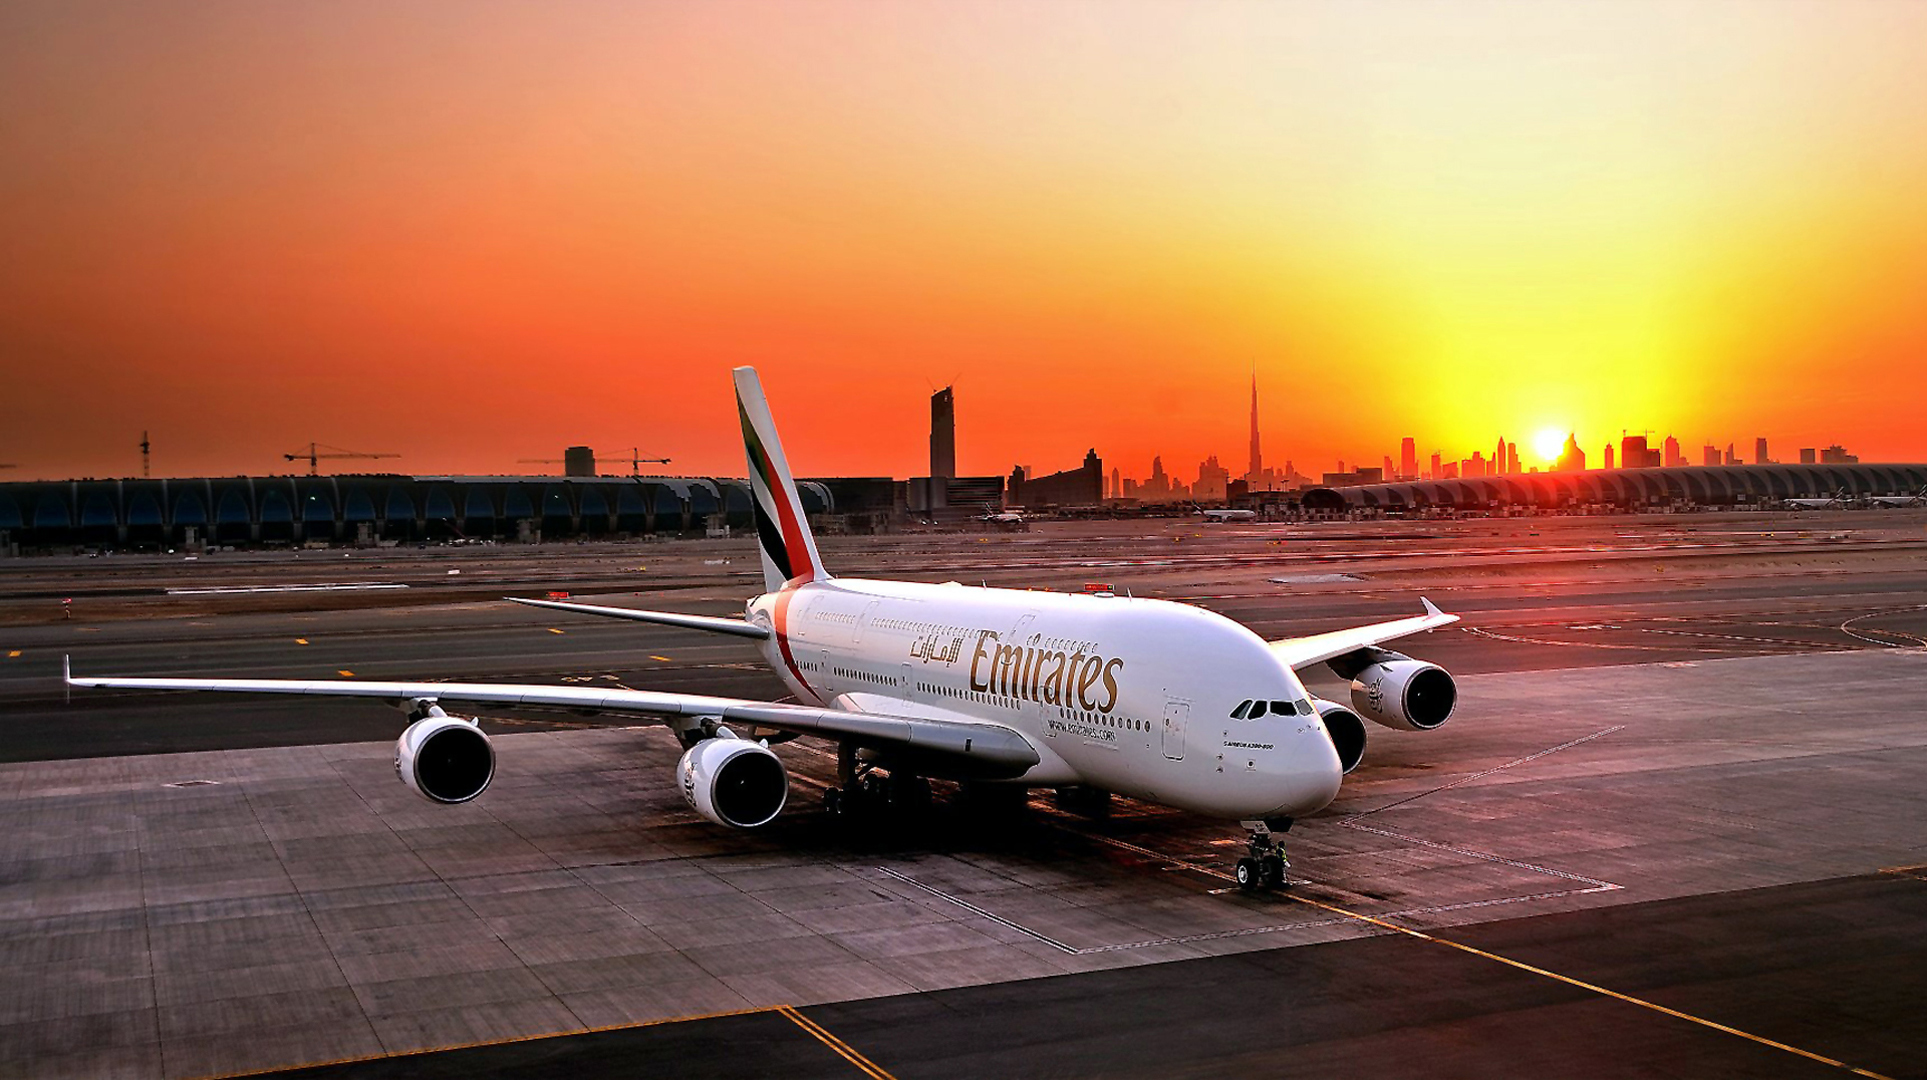 Dubai Airplane Wallpapers Hd Desktop Imagebank Biz